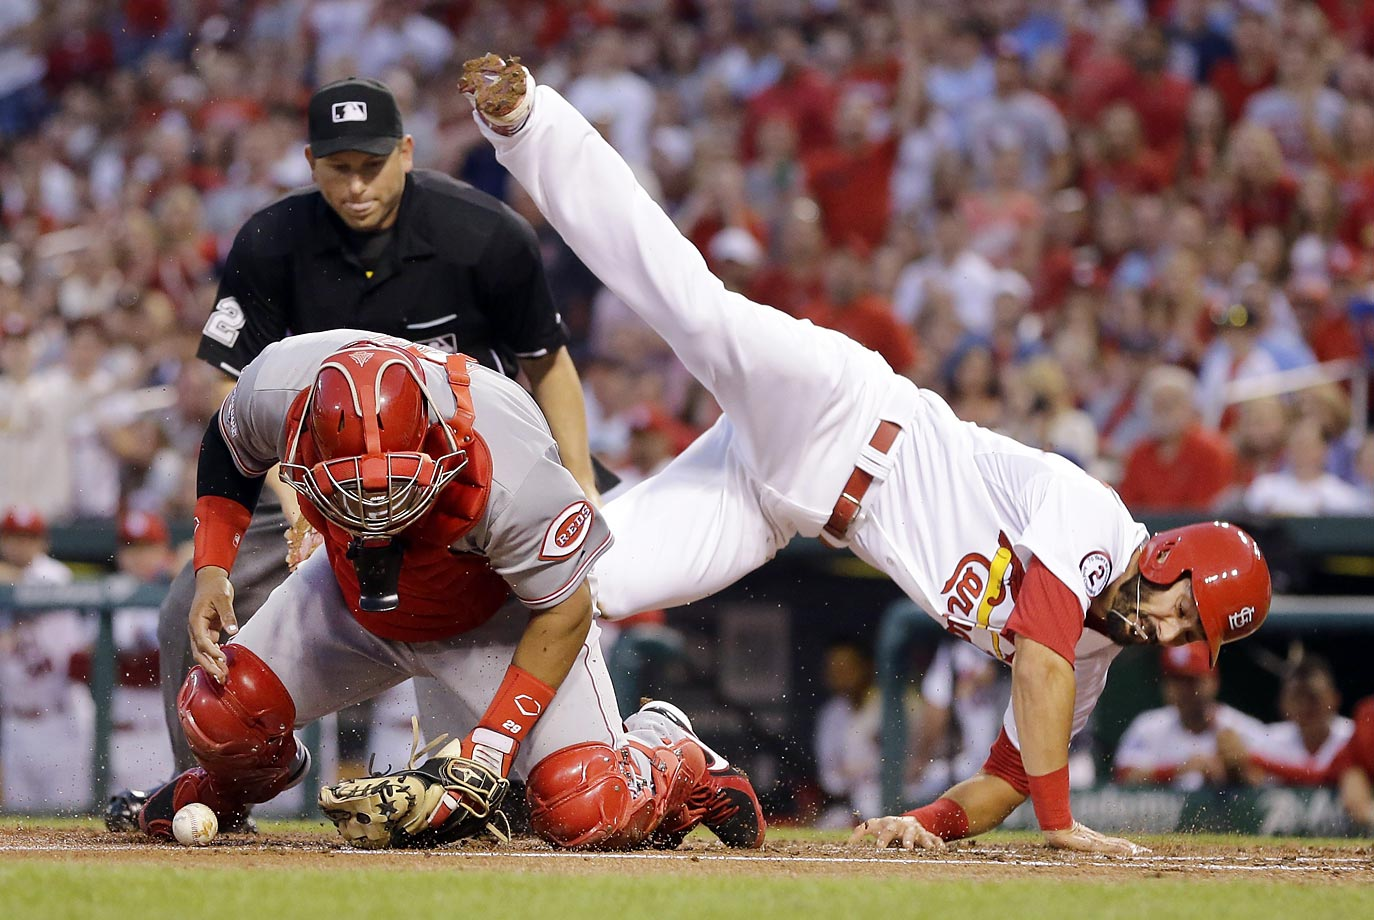 Matt Carpenter of the Cardinals is safe as he flips over Brayan Pena of the Reds.